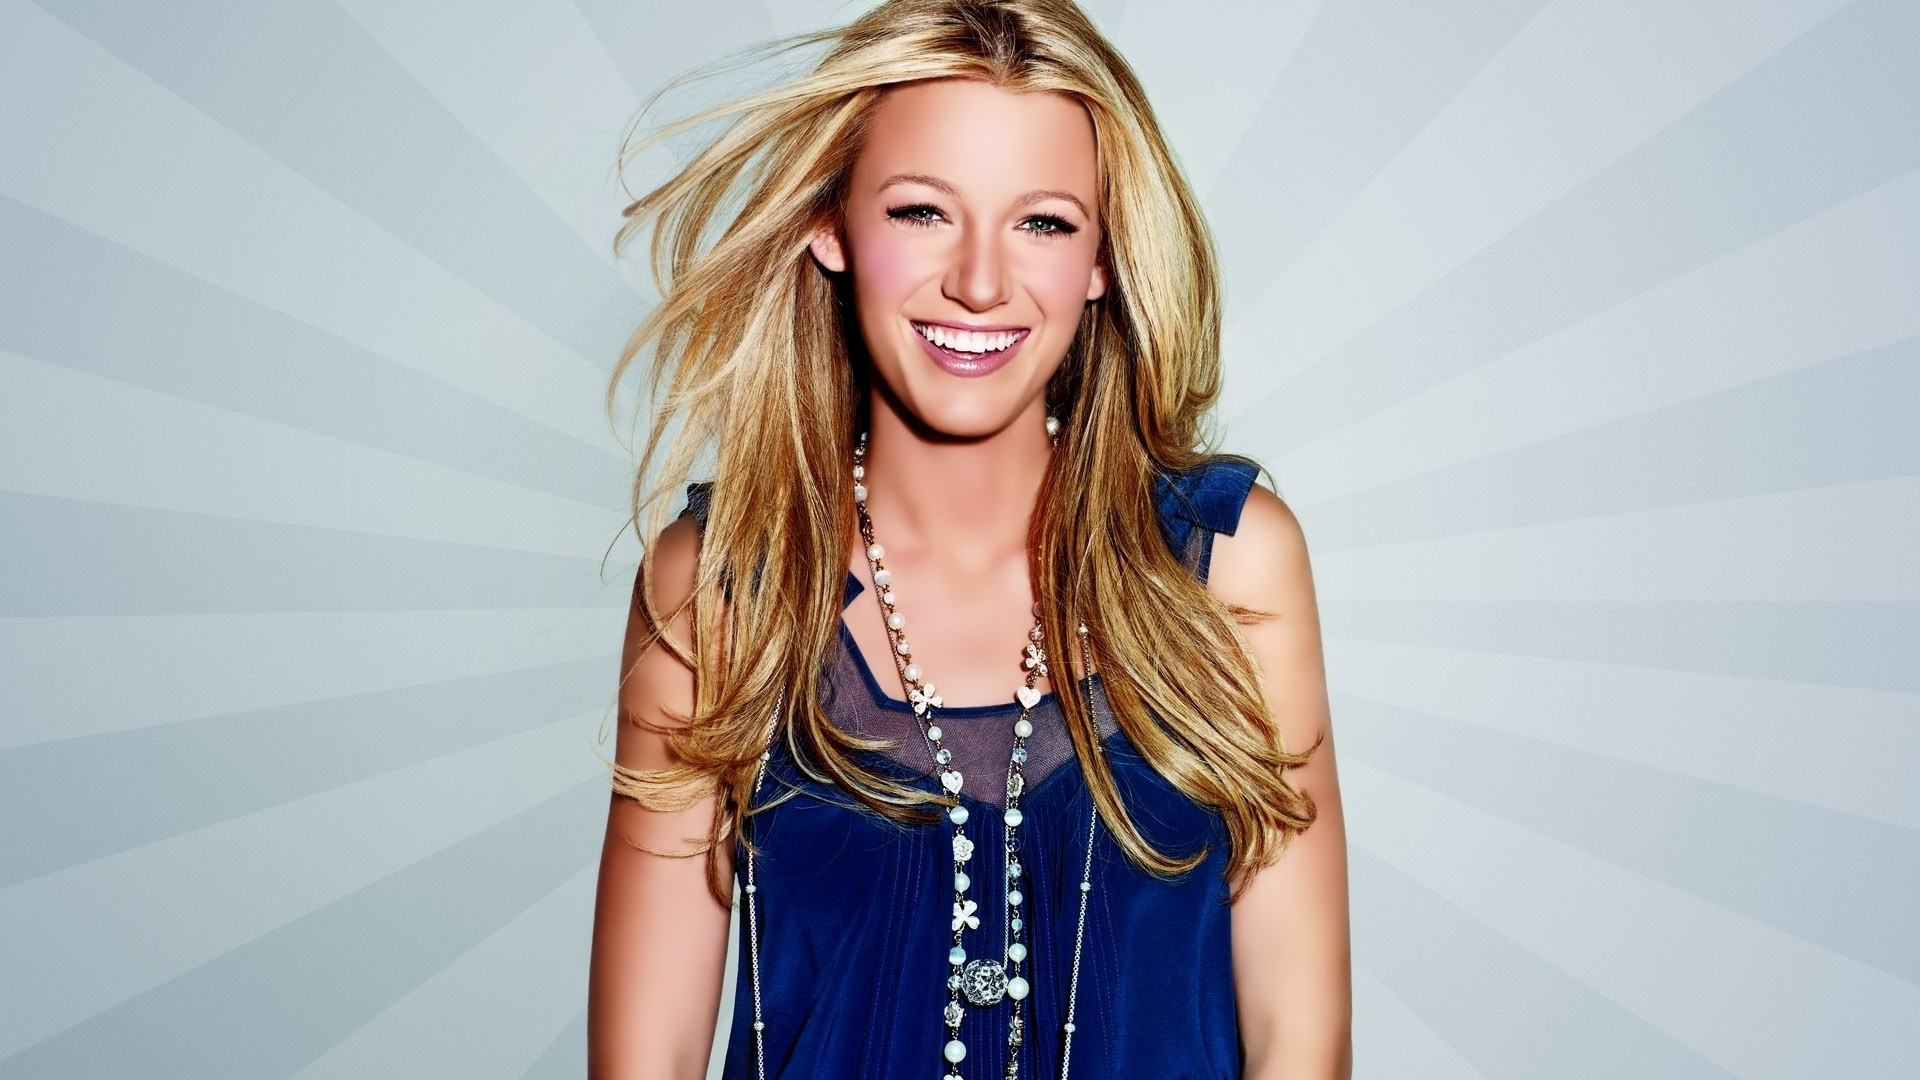 1920x1080 Blake Lively In Blue Dress | 1920 x 1080 ...